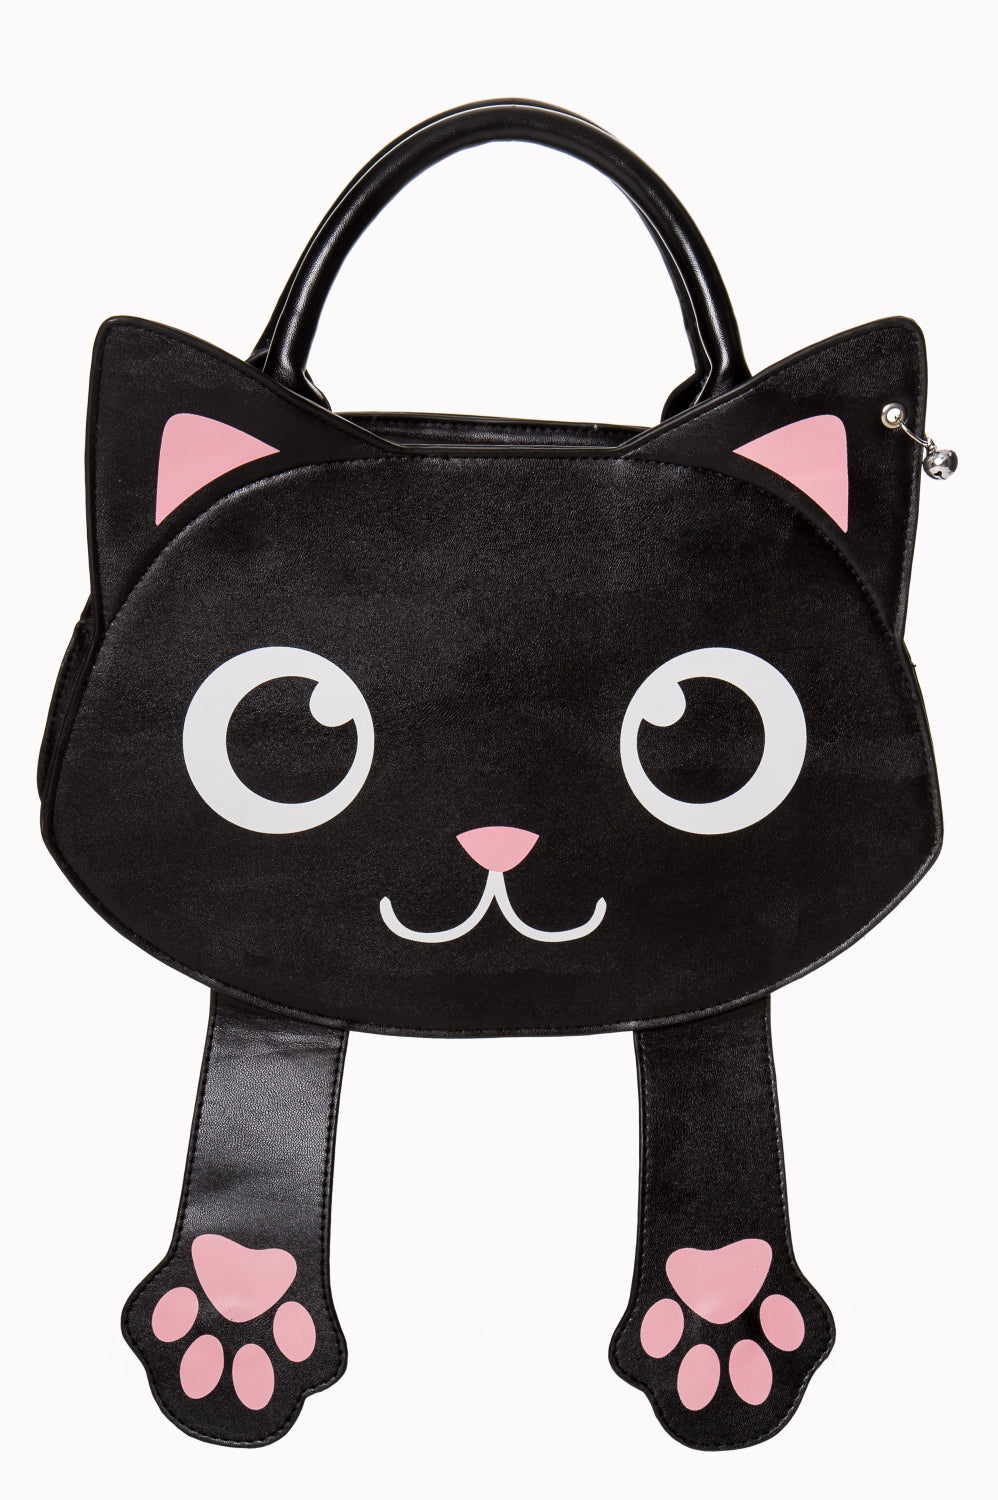 Peek-a-Boo Magnet Kitty Paws Bag by Banned